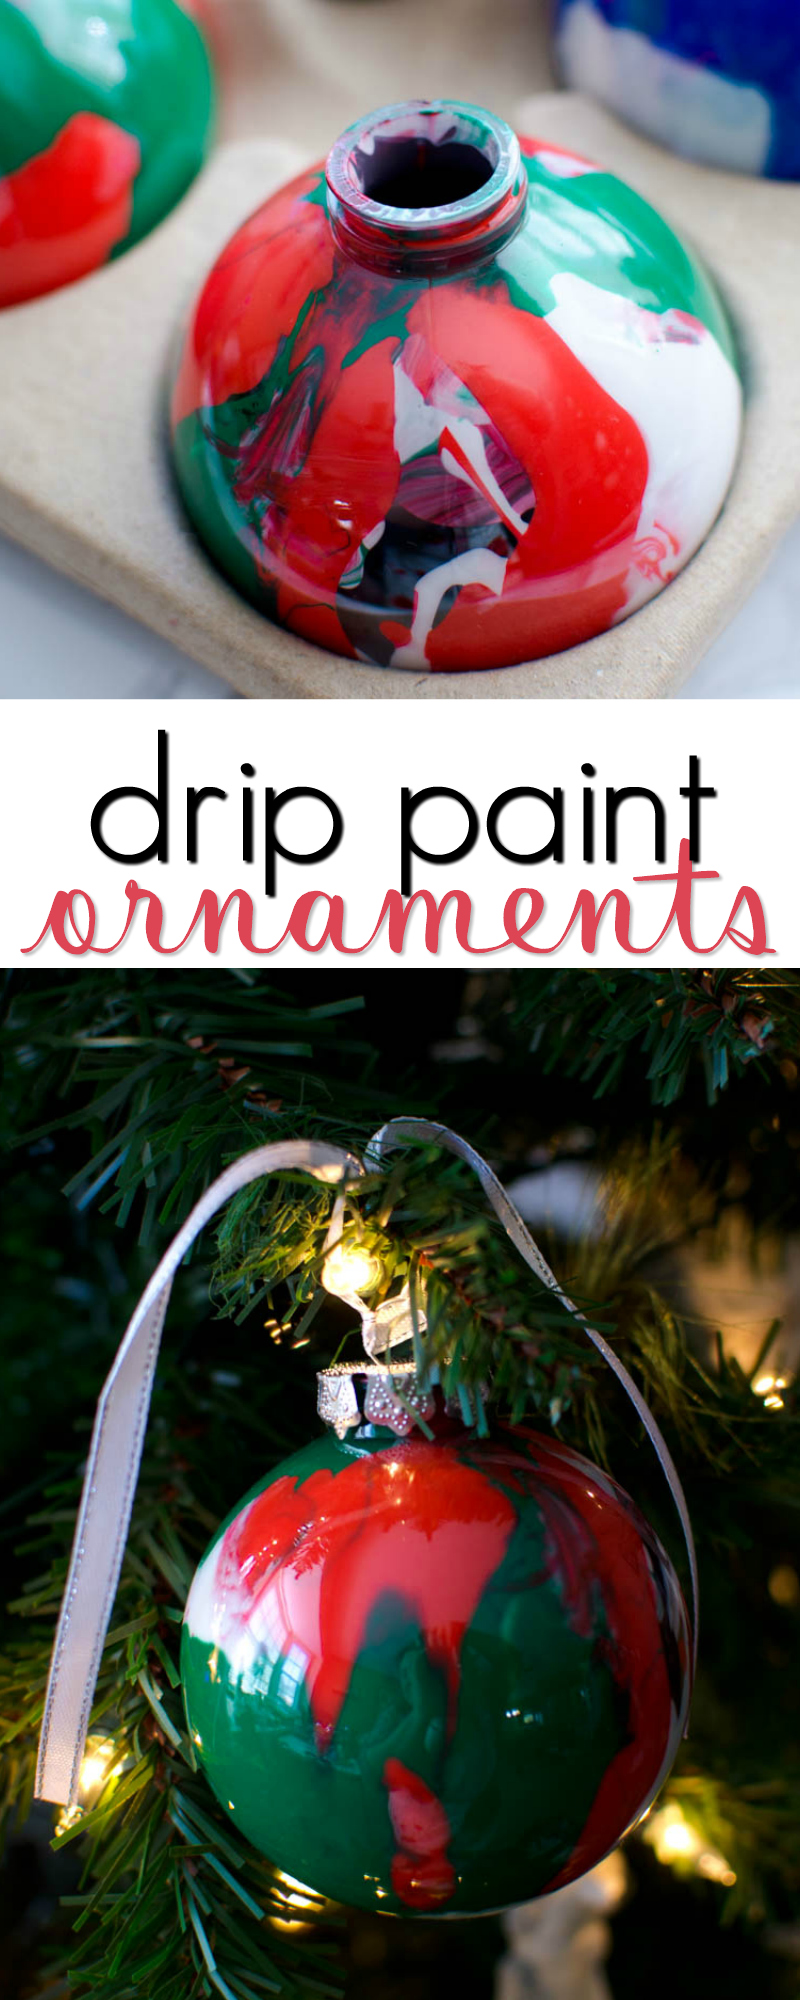 drip-paint-ornaments